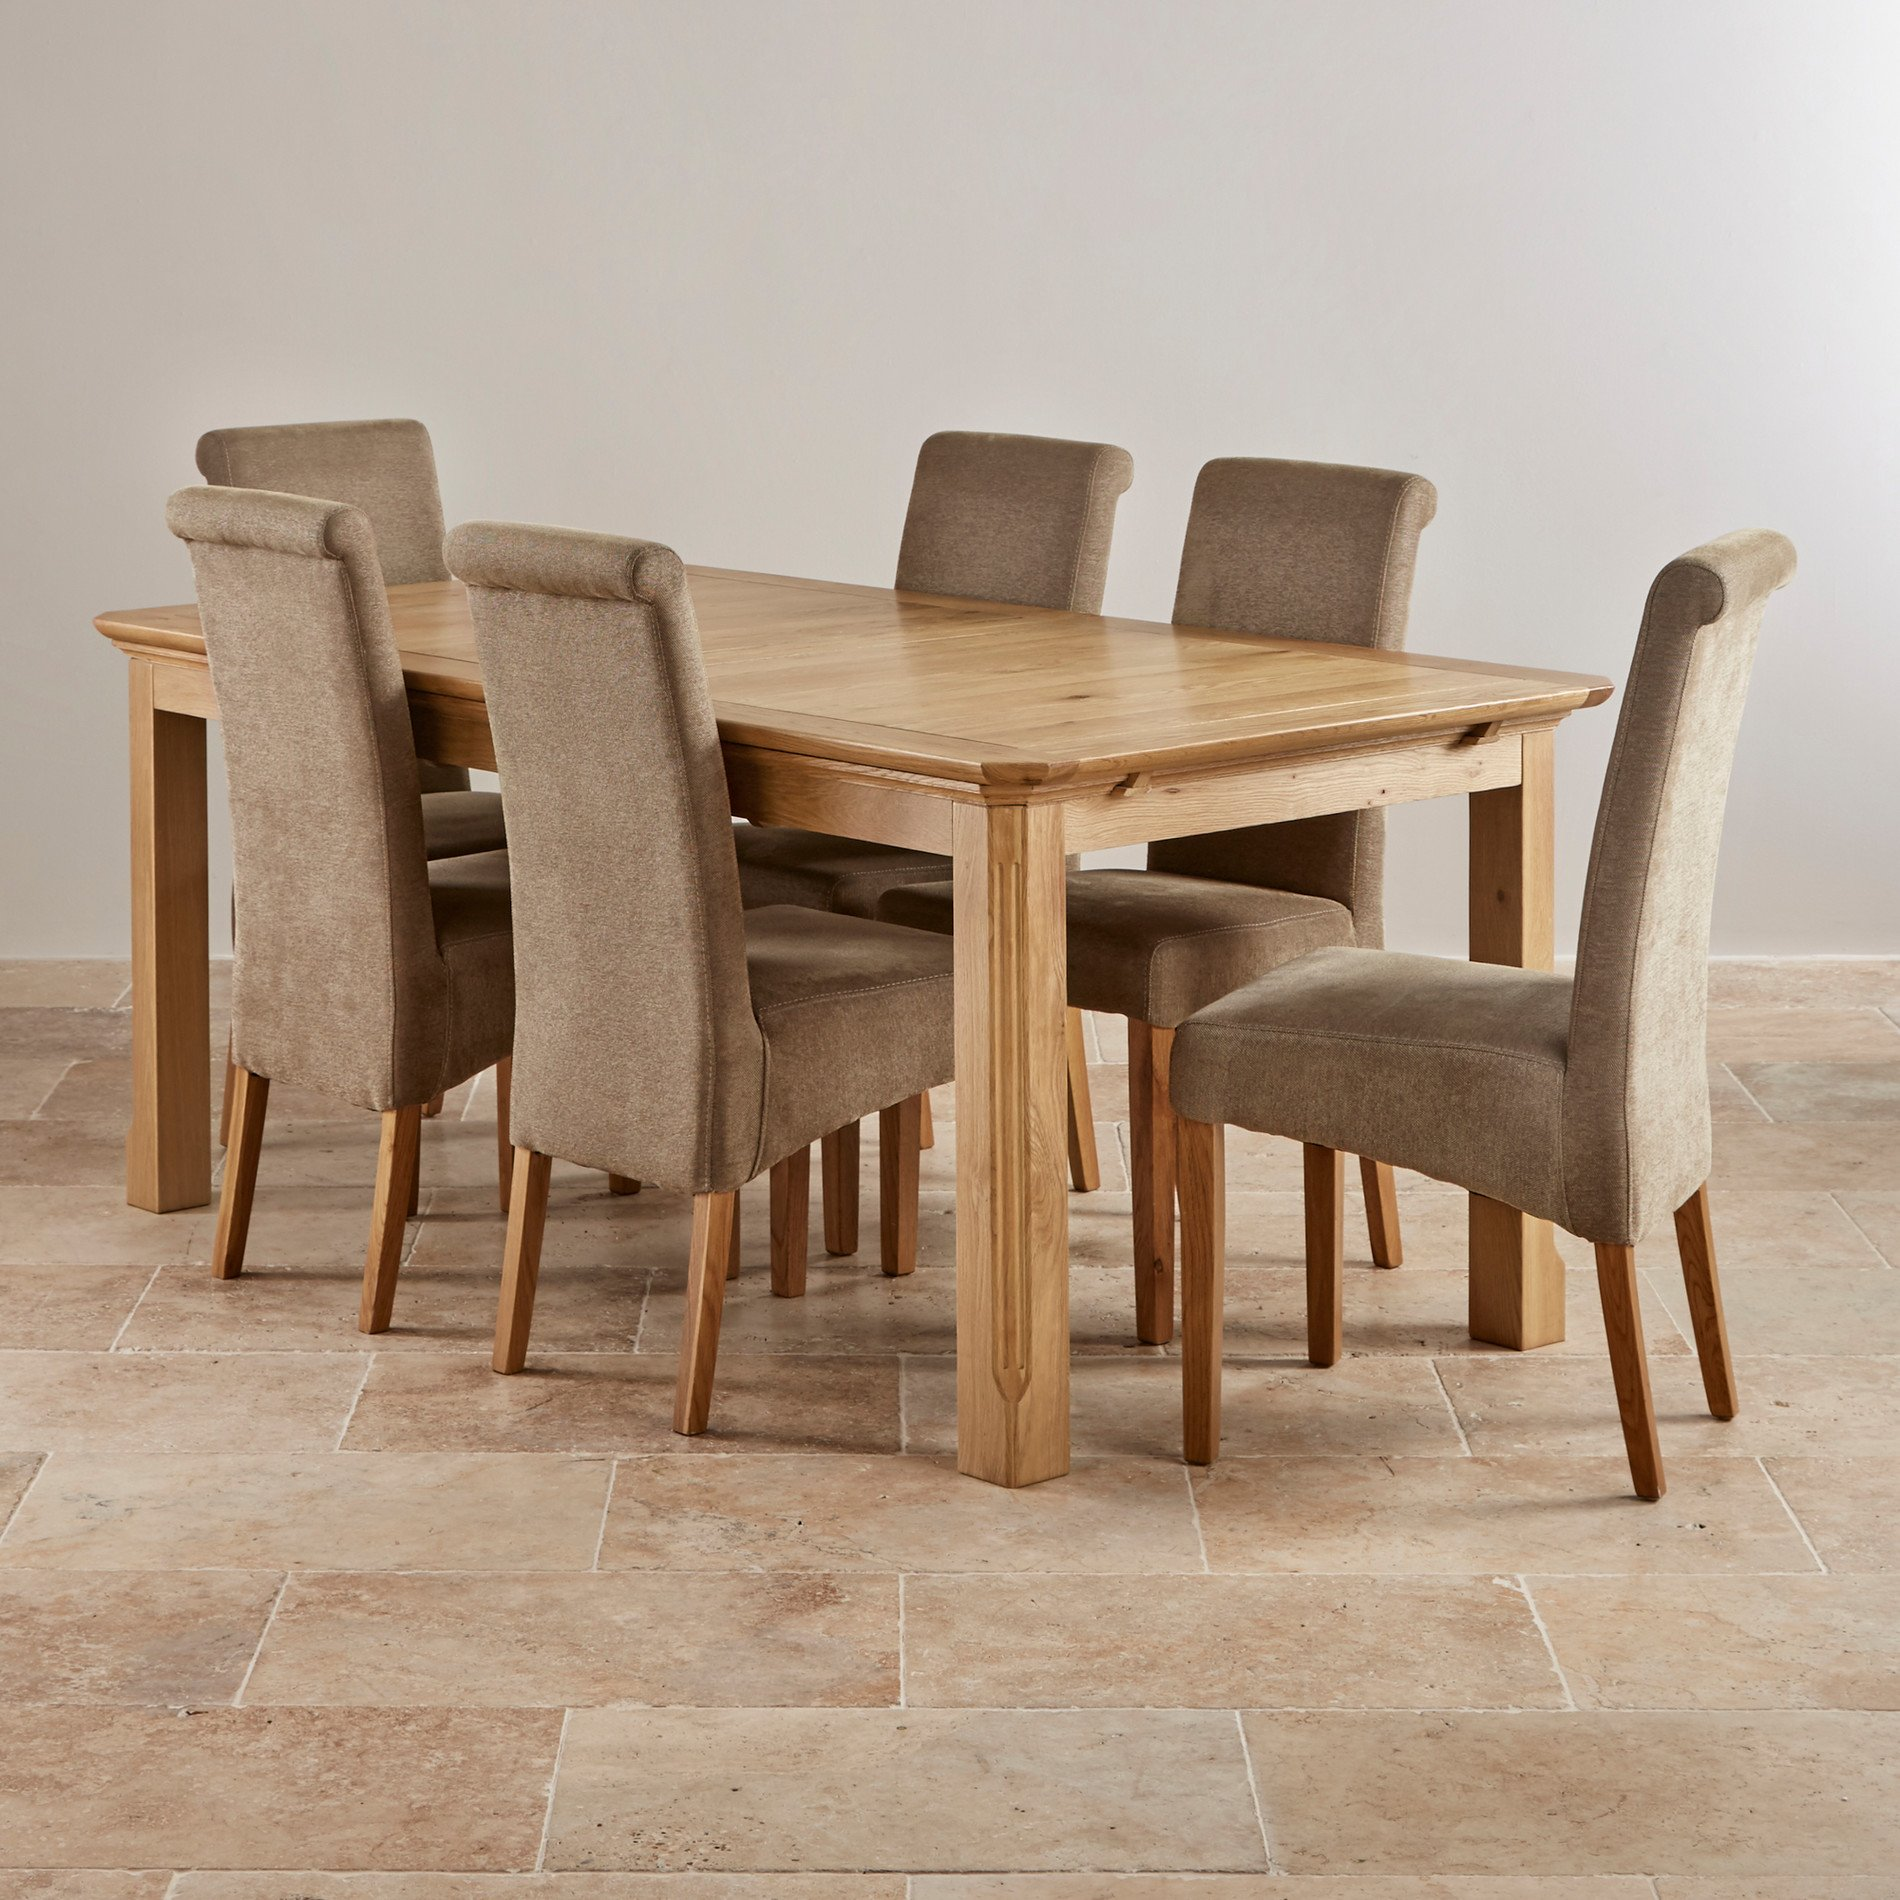 Oak Dining Room Furniture: Edinburgh Natural Solid Oak Dining Set